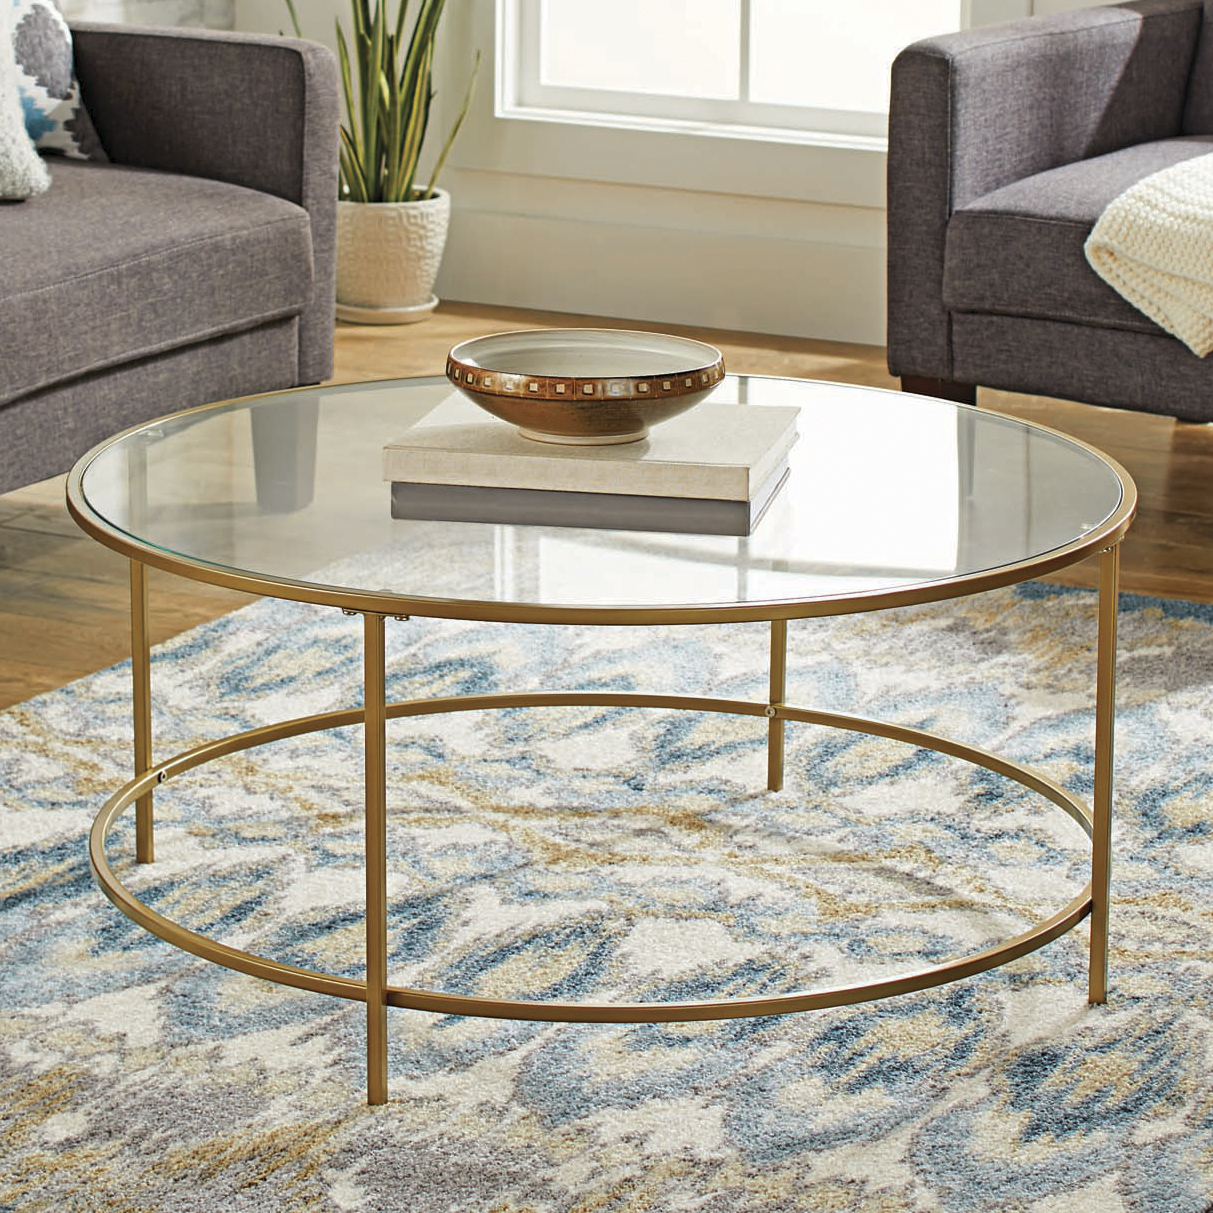 Ordinaire Better Homes U0026 Gardens Nola Coffee Table, Gold Finish   Walmart.com